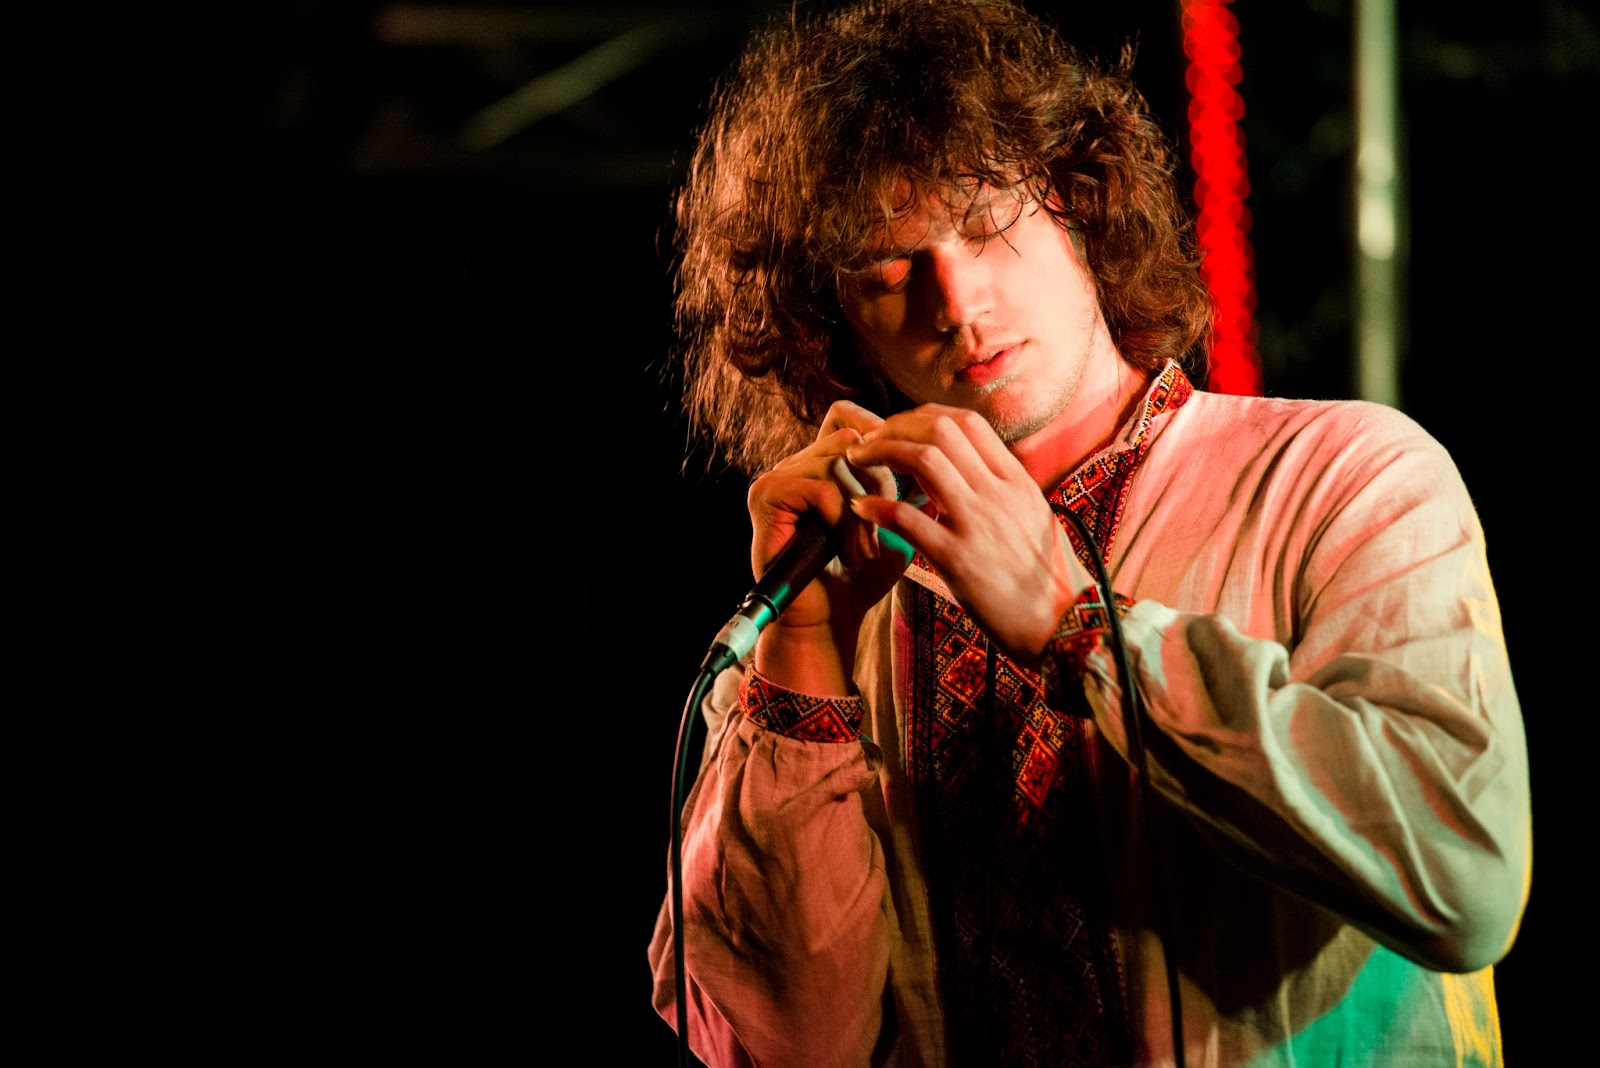 THE DOORS ALIVE - LIVE REVIEW